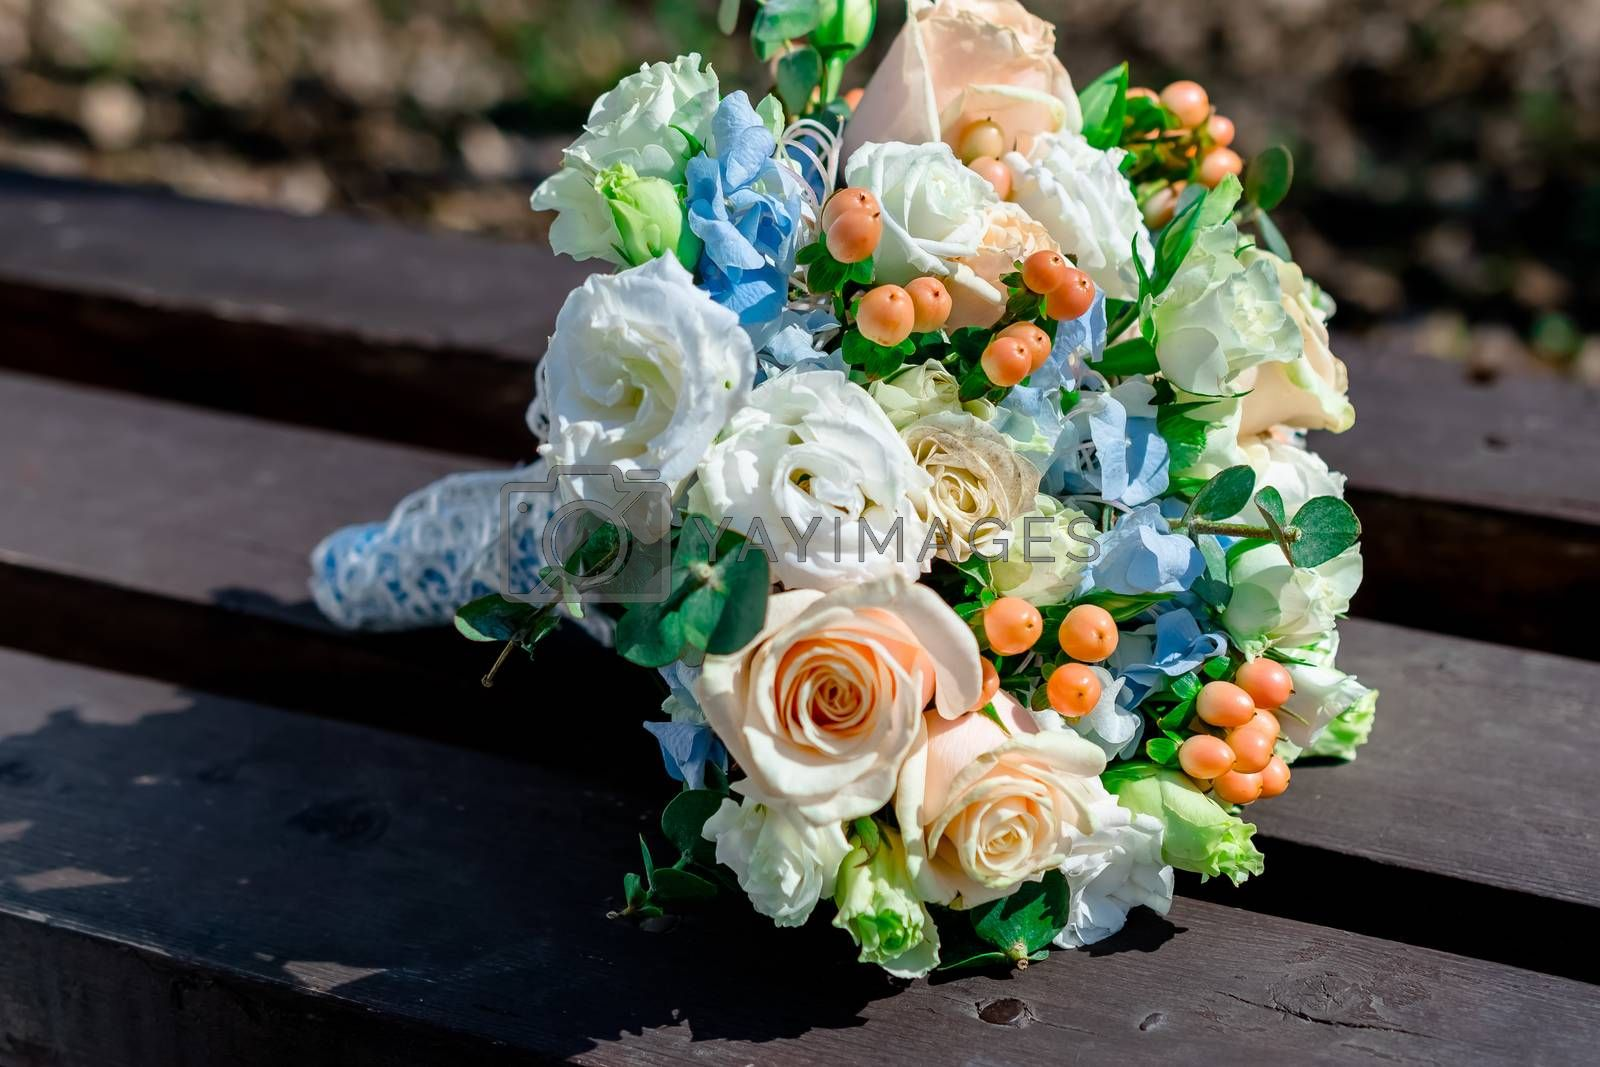 bride's bouquet lies on the bench